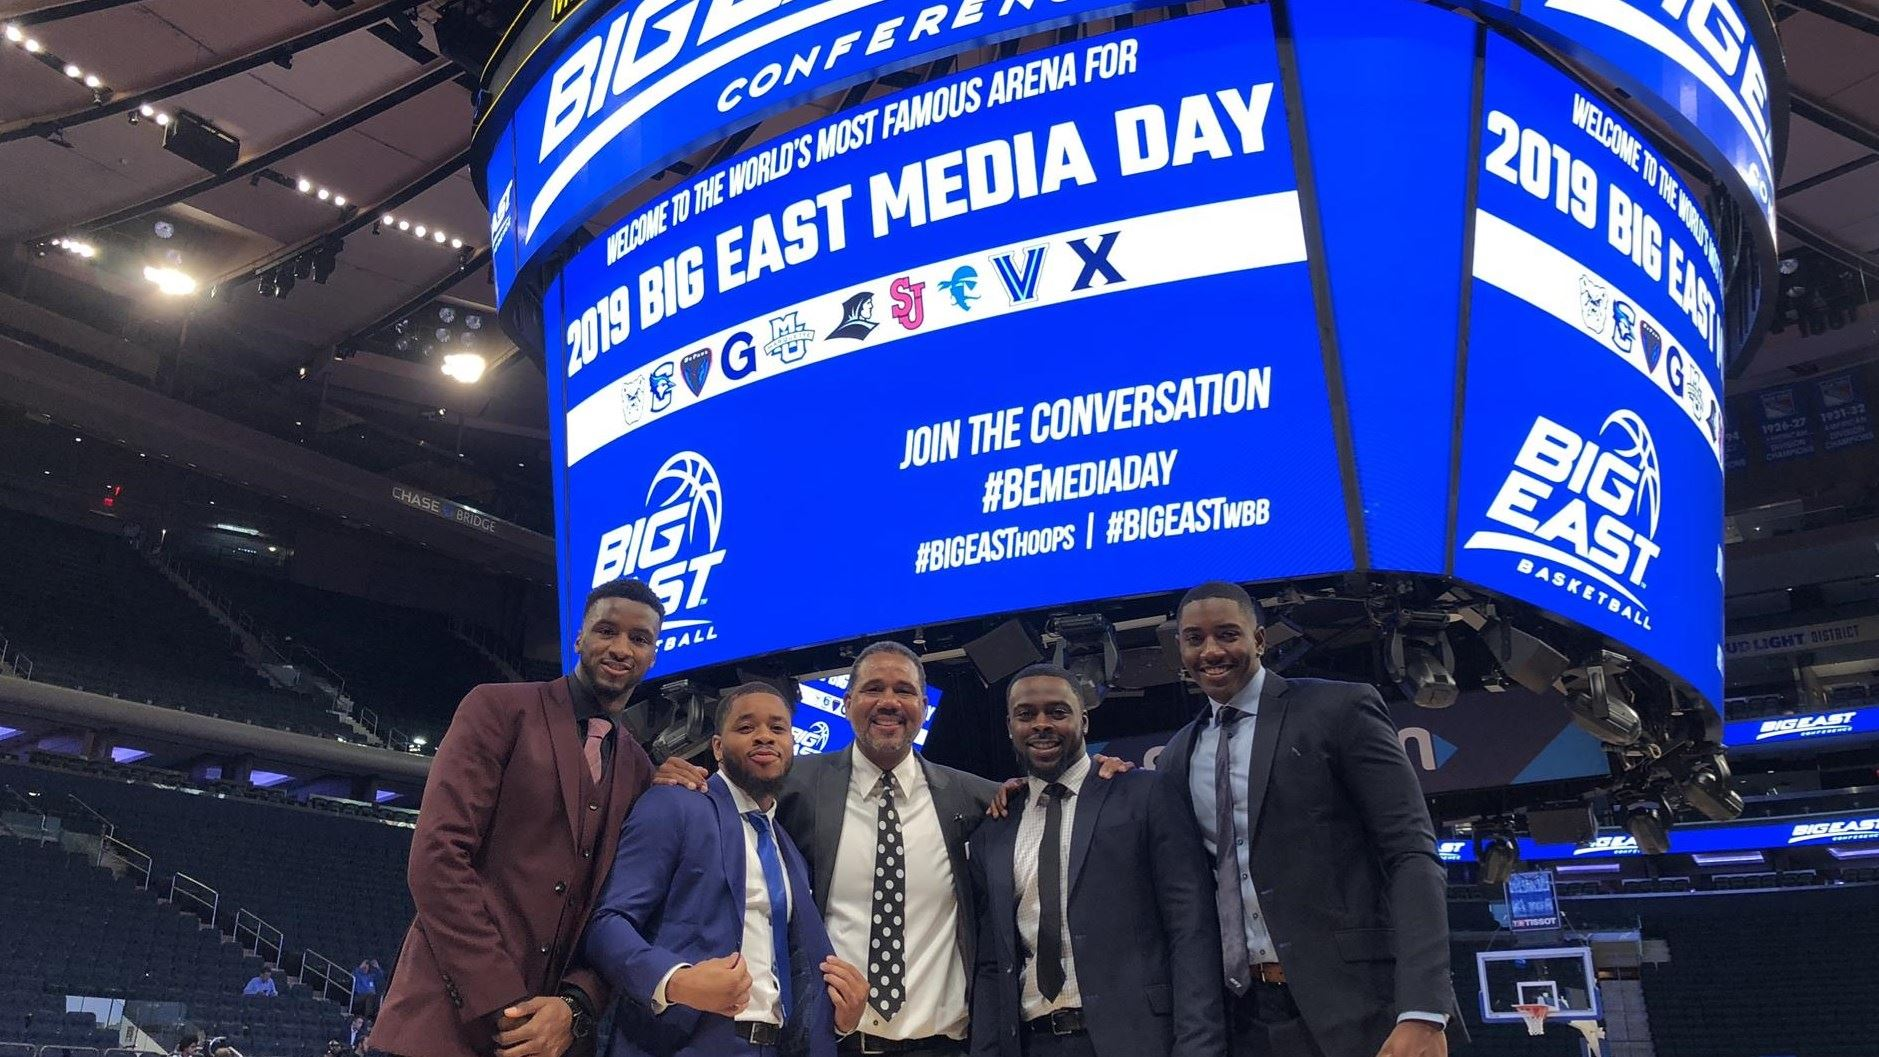 Big East Media Day